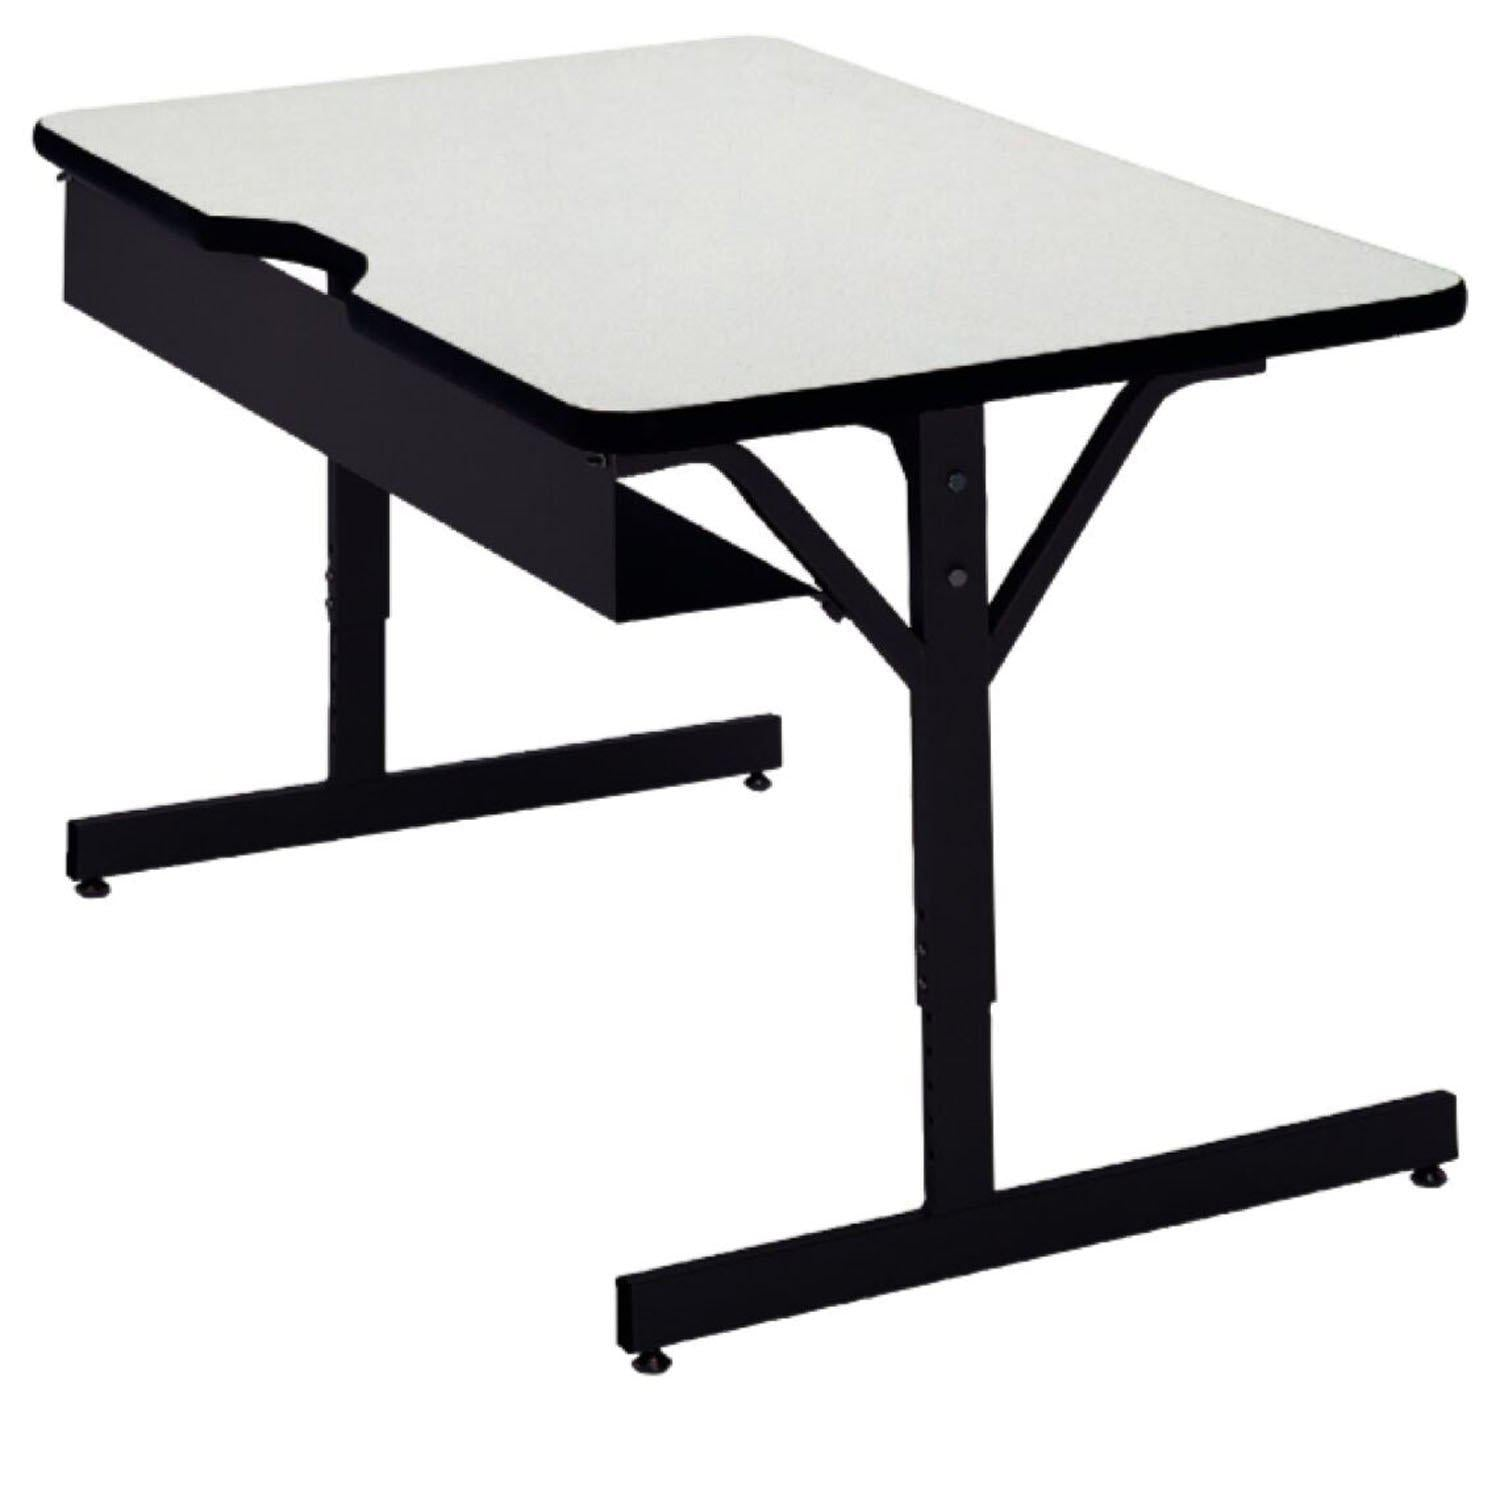 Compu-Table Adjustable-Height Computer Tables-Tables-